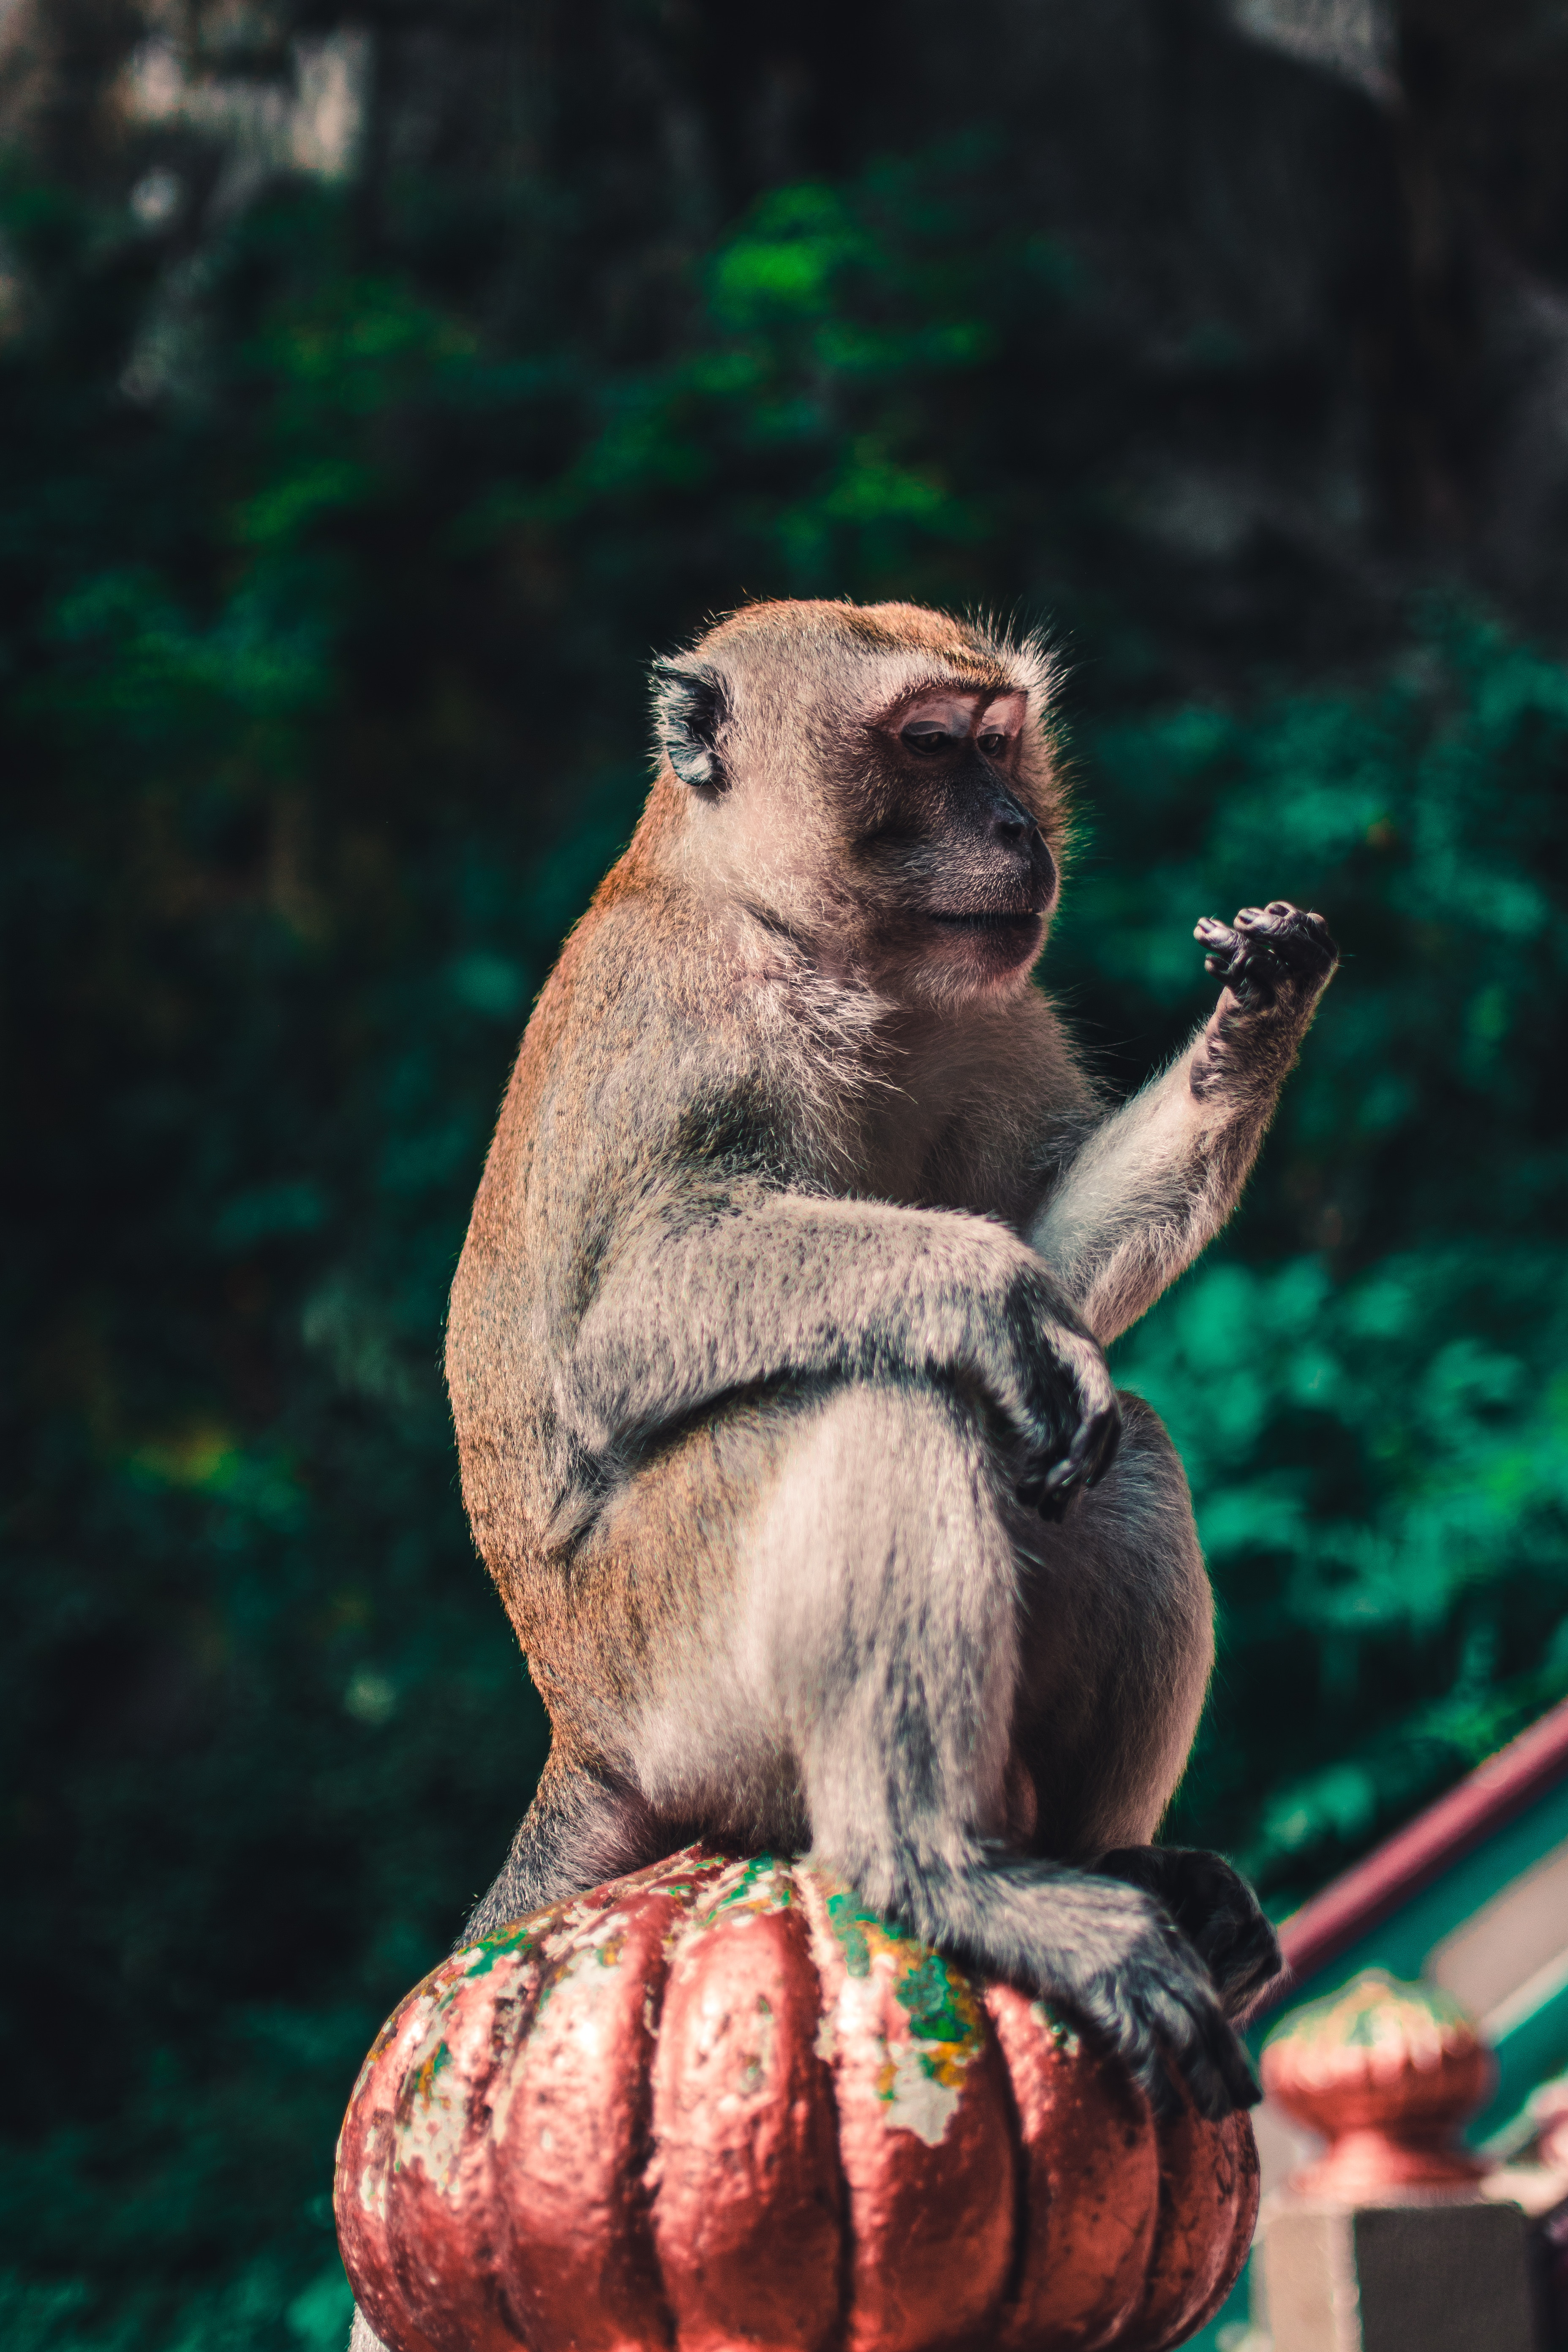 57753 download wallpaper Animals, Toque, Macaque, Monkey, Animal screensavers and pictures for free